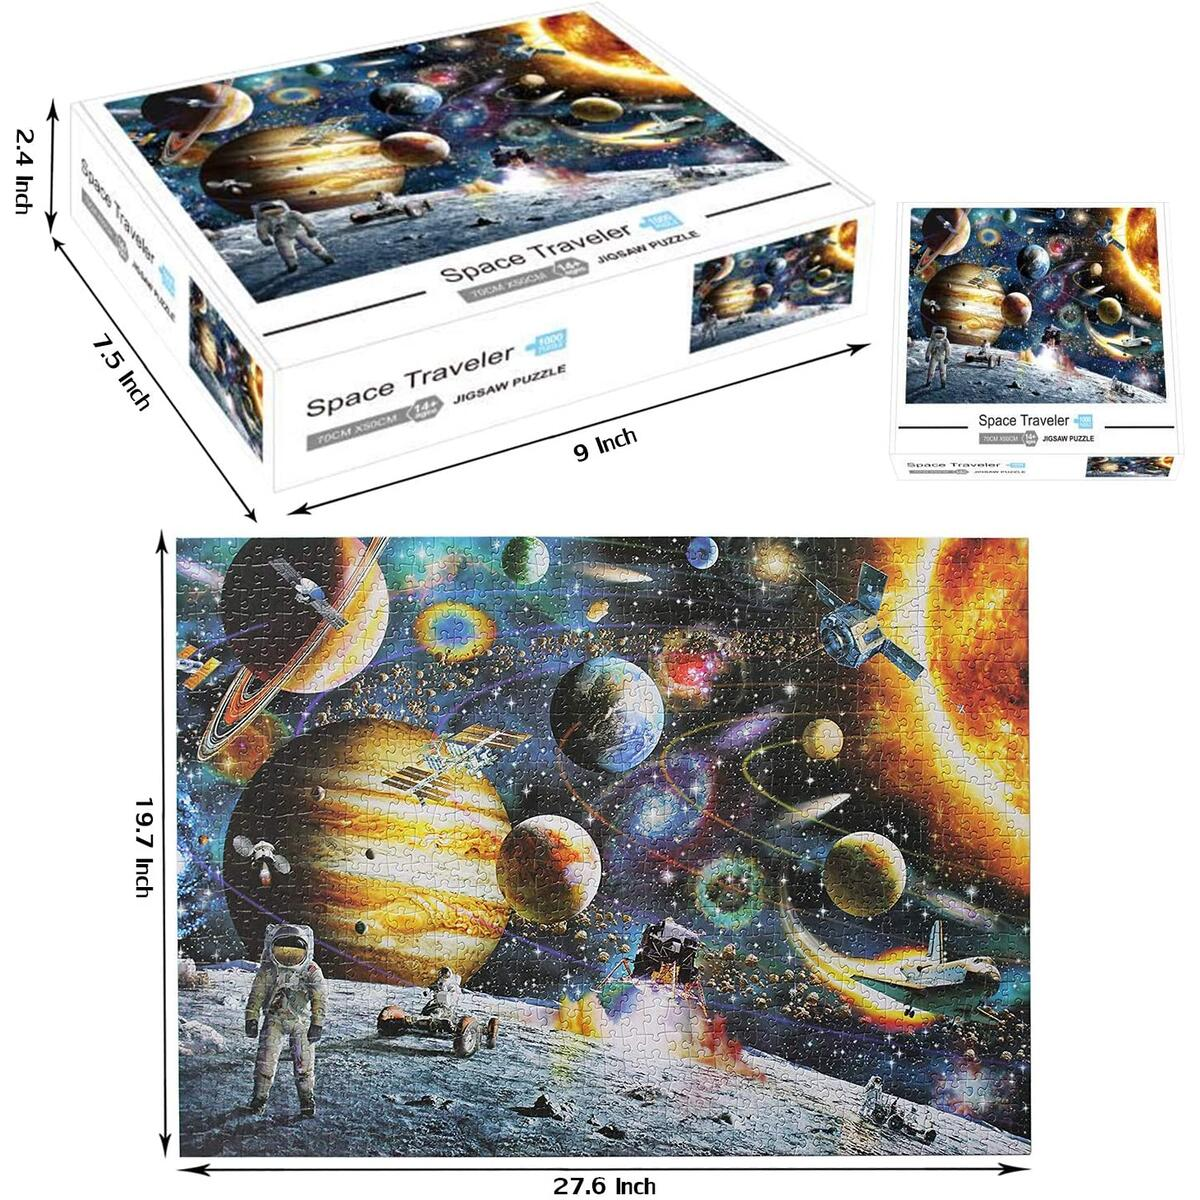 Space Puzzles for Kids and Adults 1000 Pieces Large Planets Jigsaw Puzzle